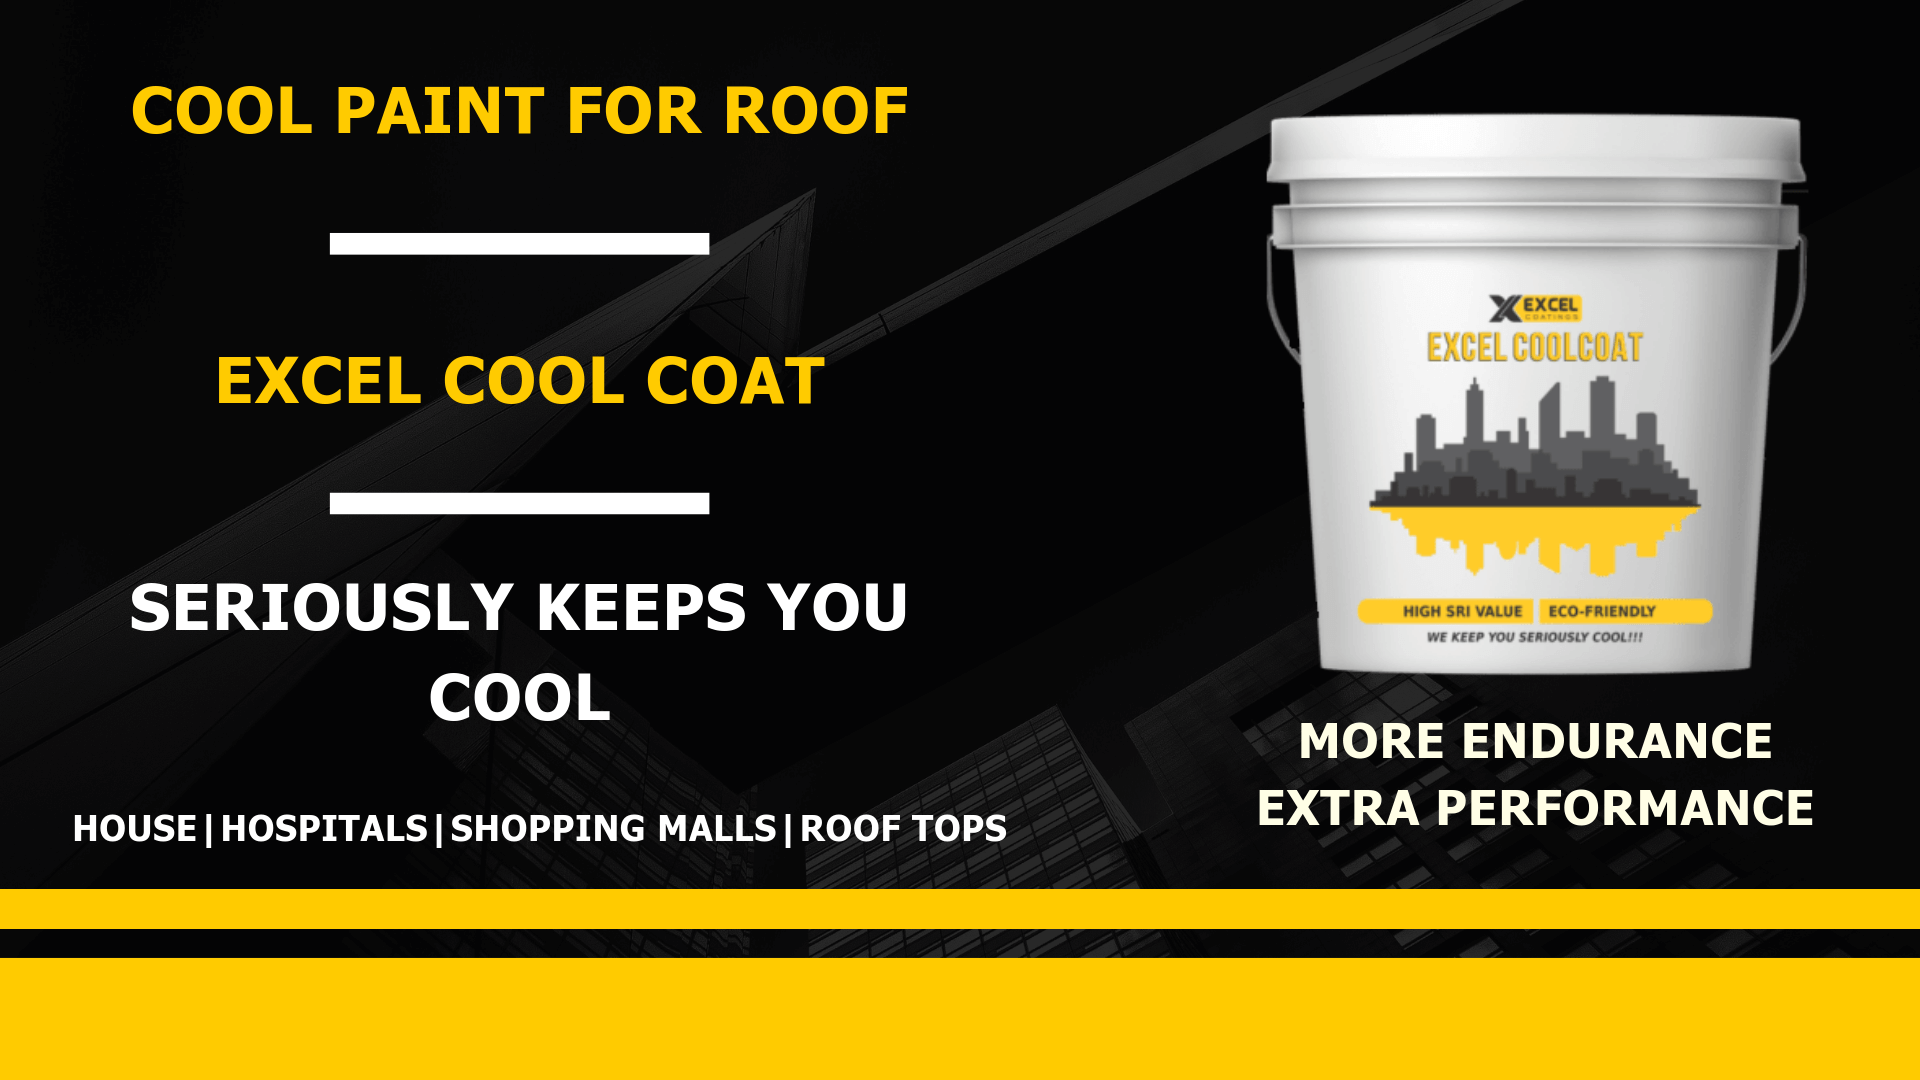 Cool Paint for Roof- Excel CoolCoat